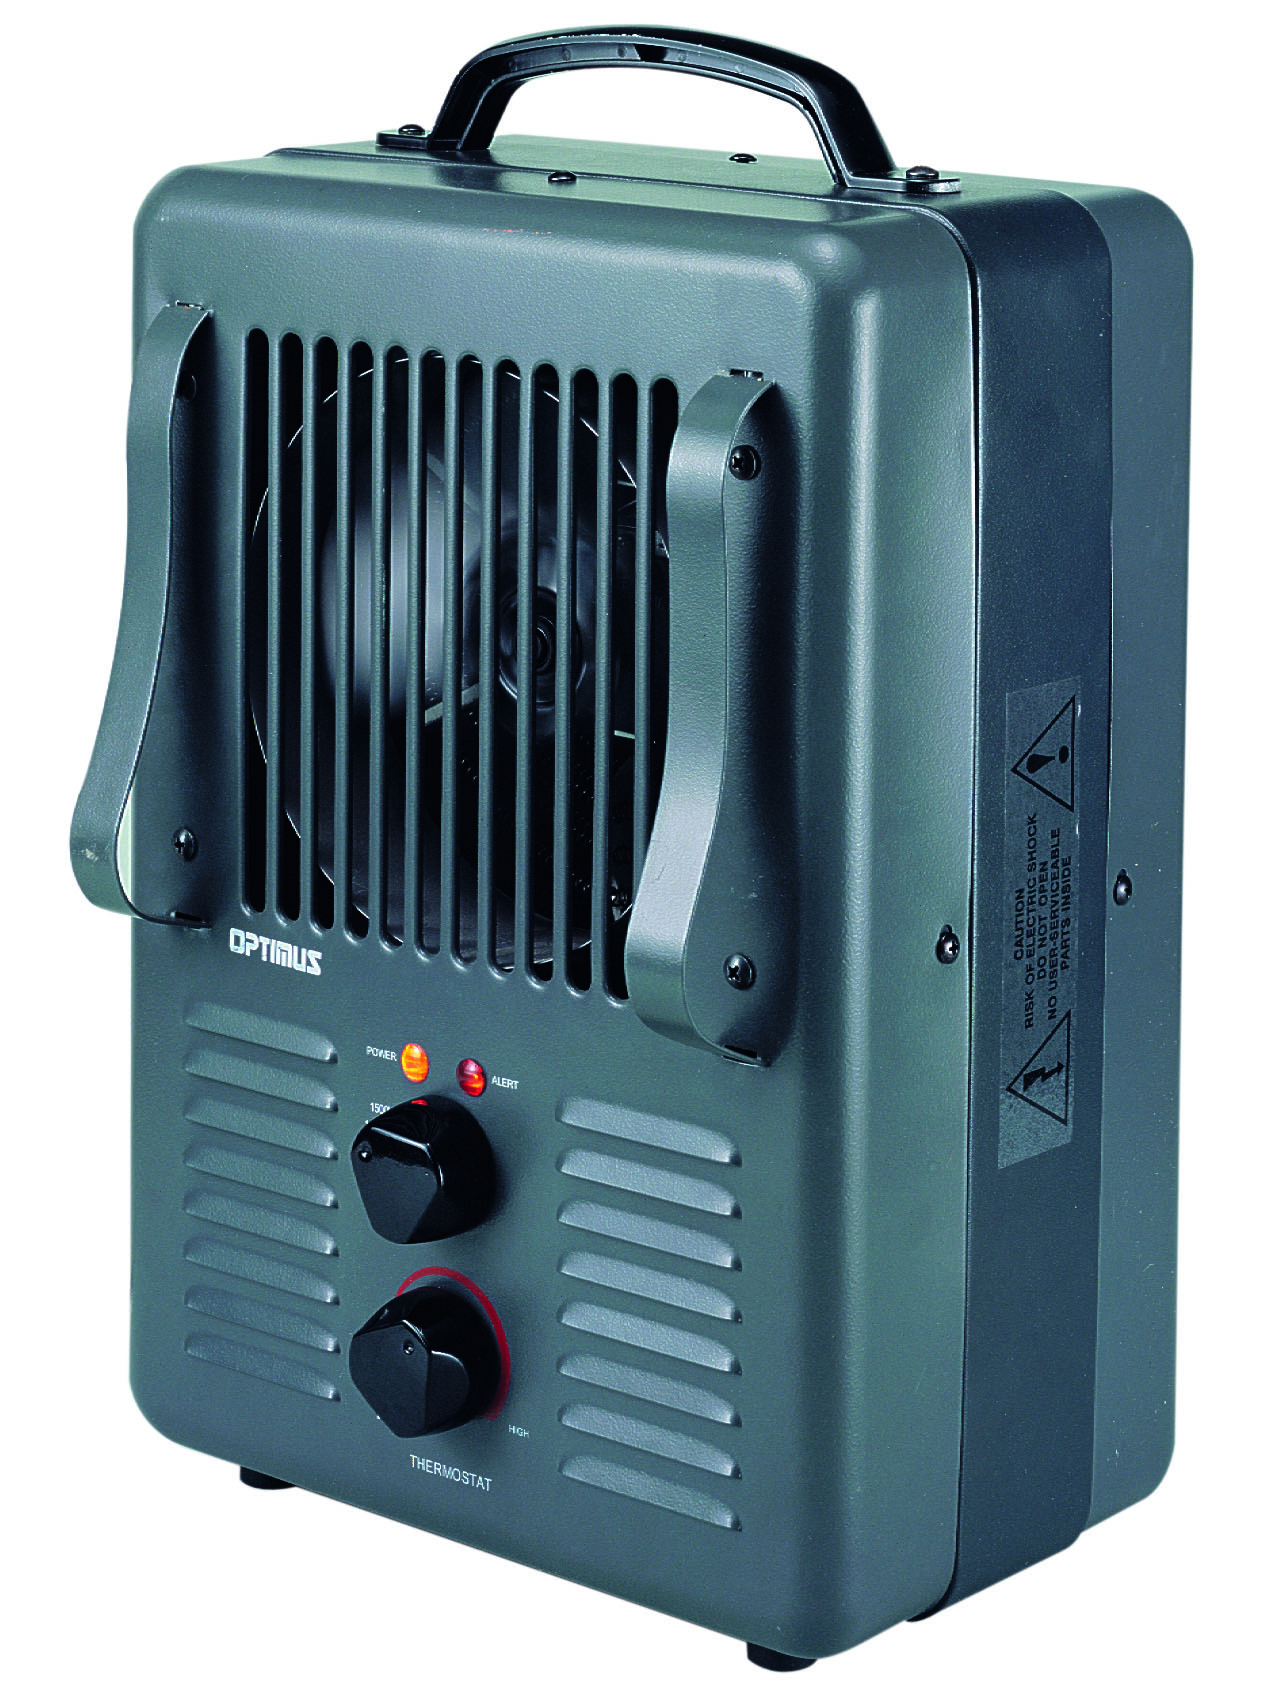 Optimus lvh3010s portable utility heater with thermostat